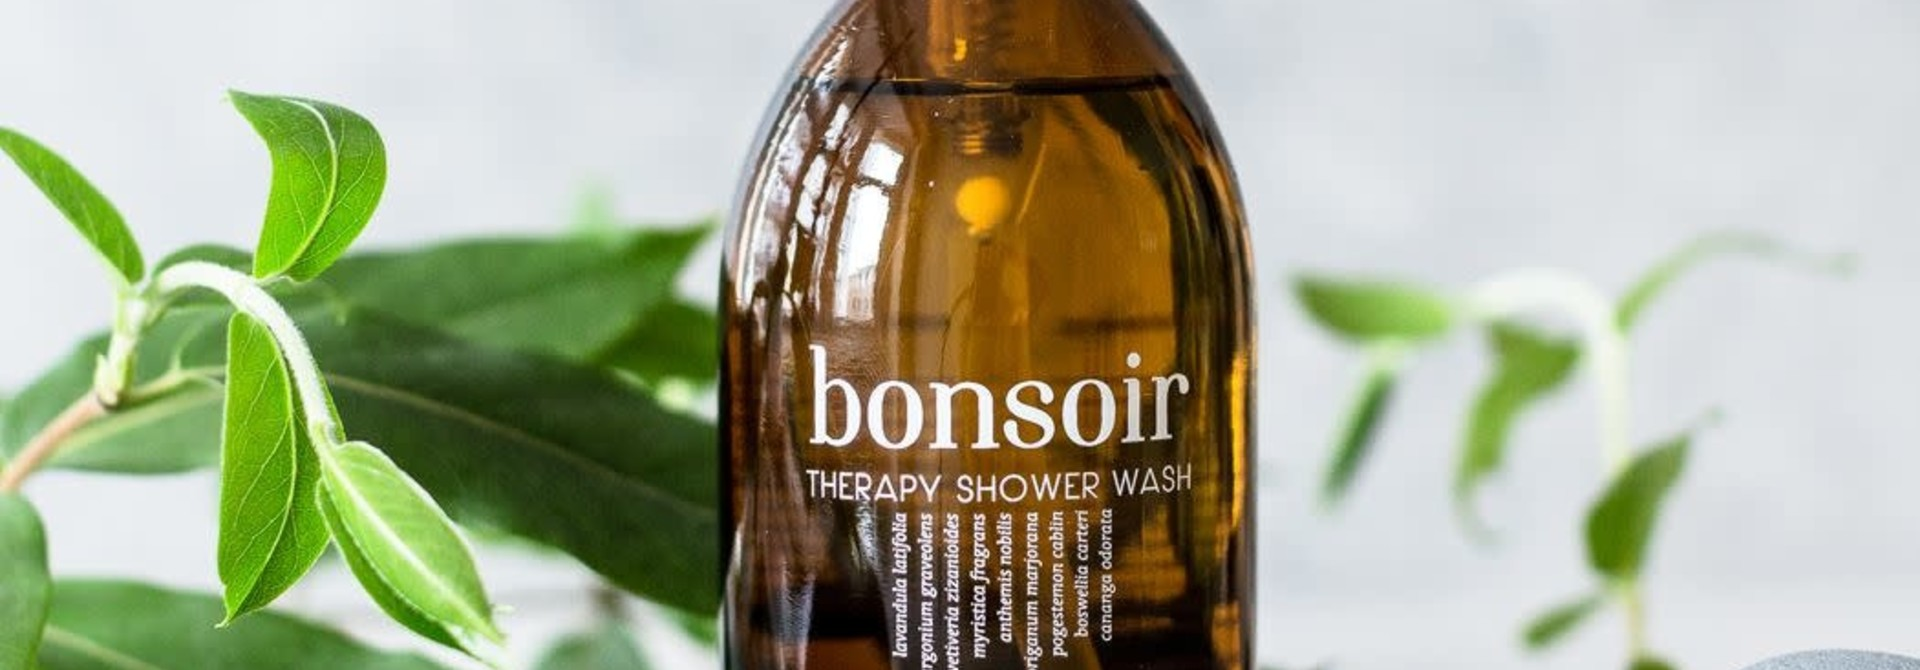 Bonsoir Therapy Shower Wash - Douchegel